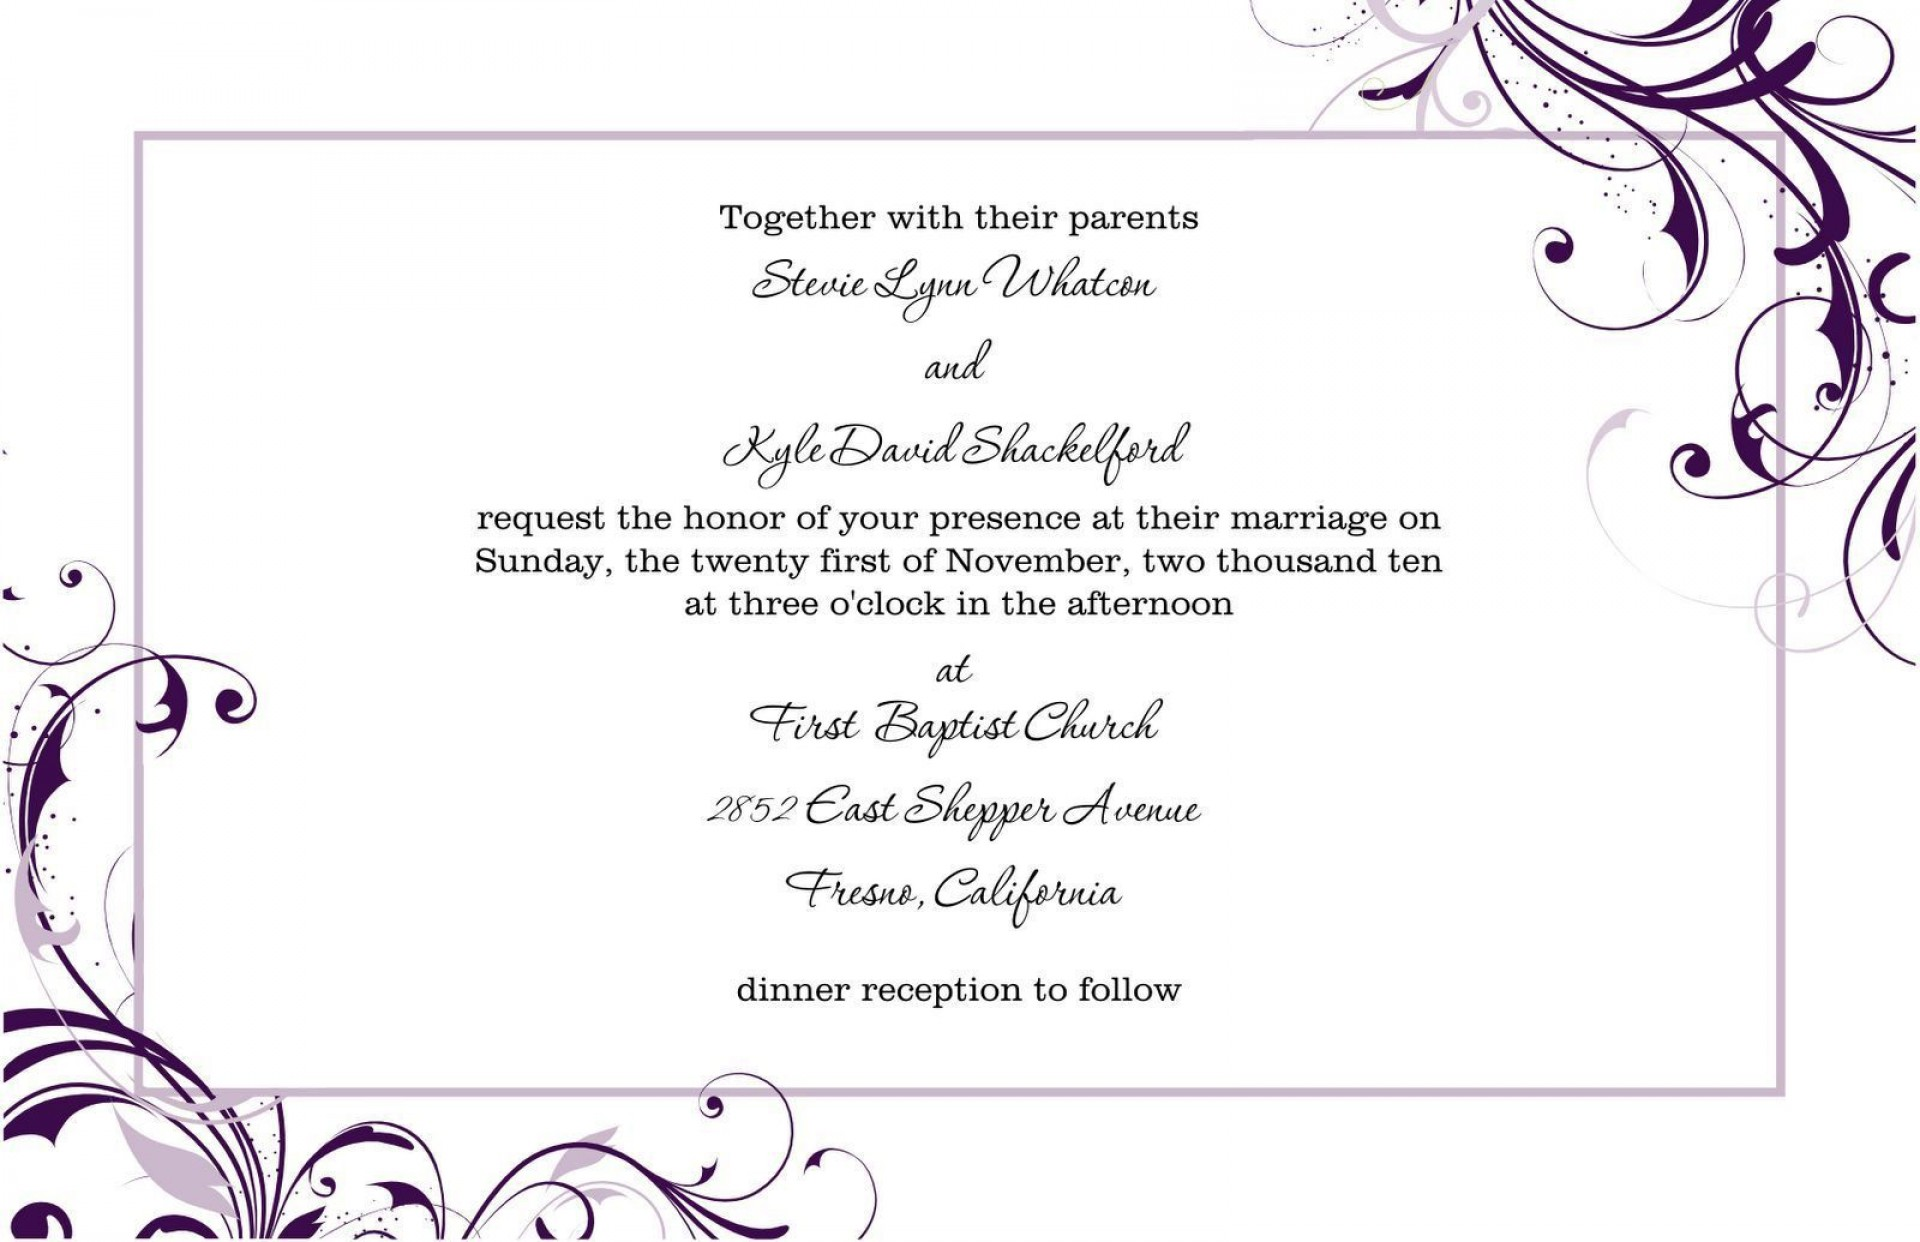 006 Formidable Invitation Template For Word High Resolution  Birthday Wedding Free Indian1920